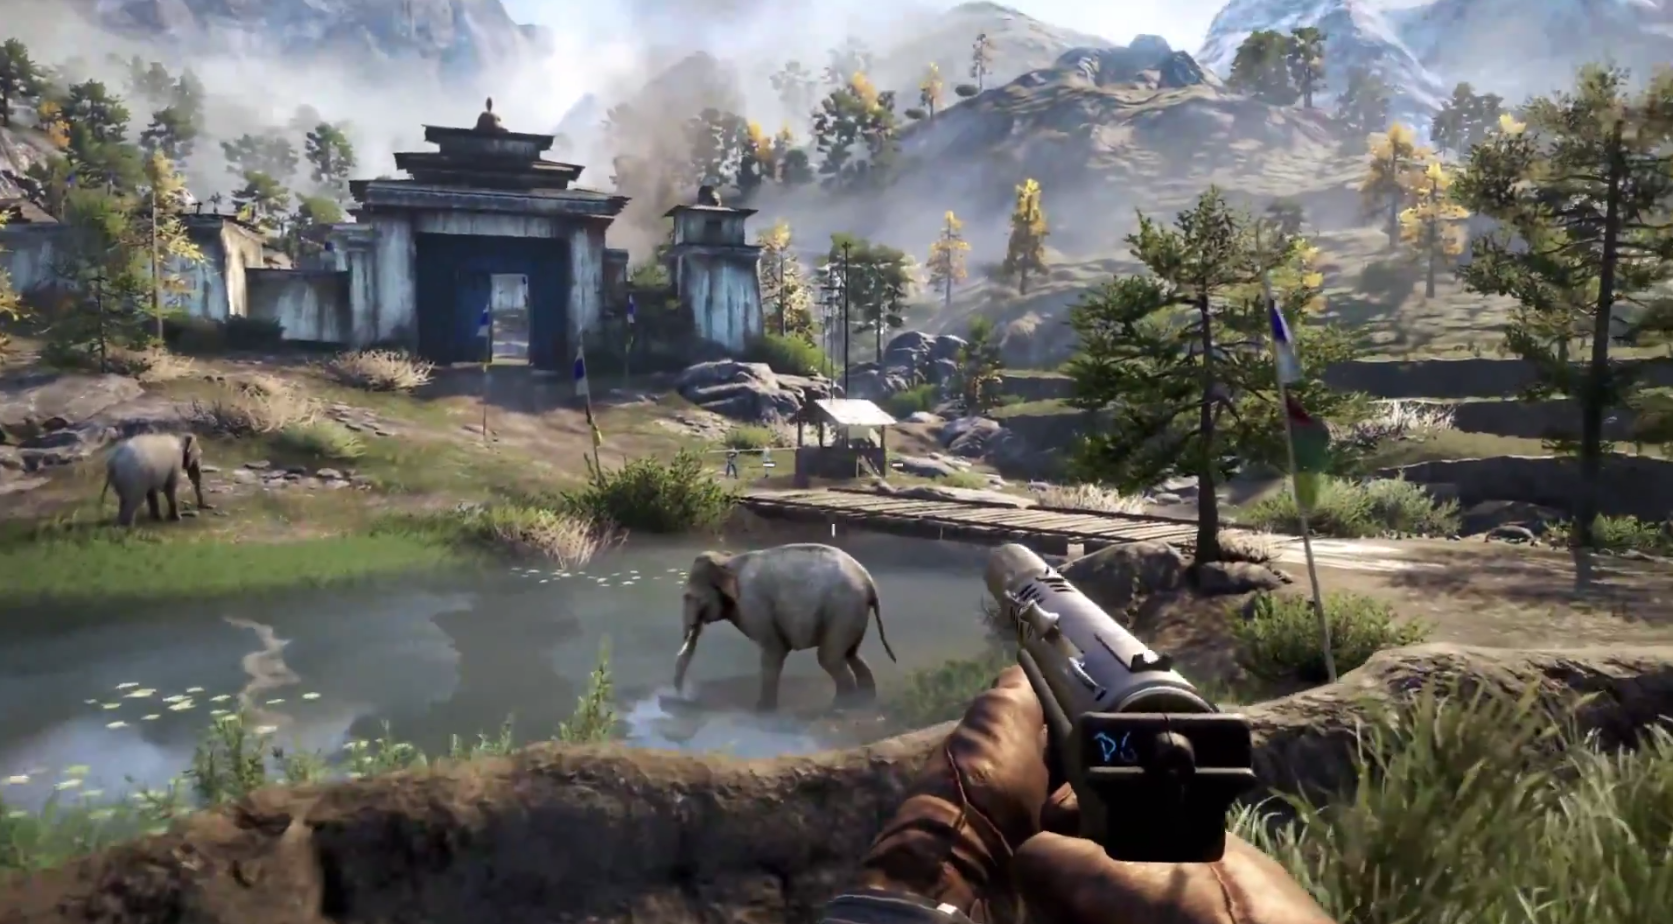 far cry 4 analysis best worst gotgame. Black Bedroom Furniture Sets. Home Design Ideas